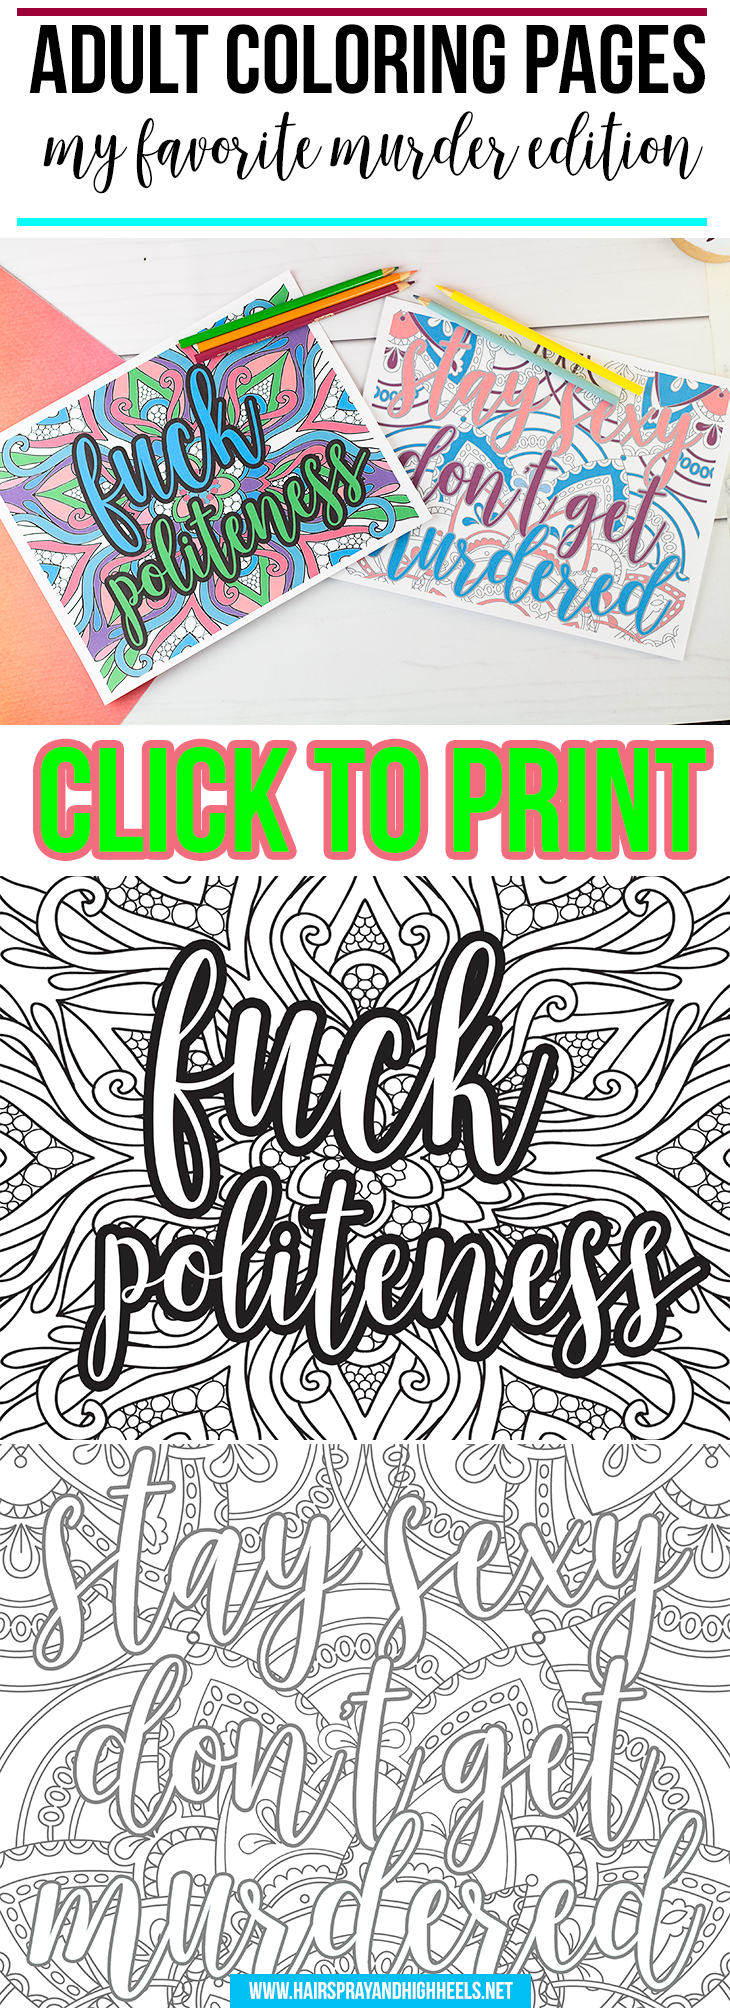 Adult Coloring Pages My Favorite